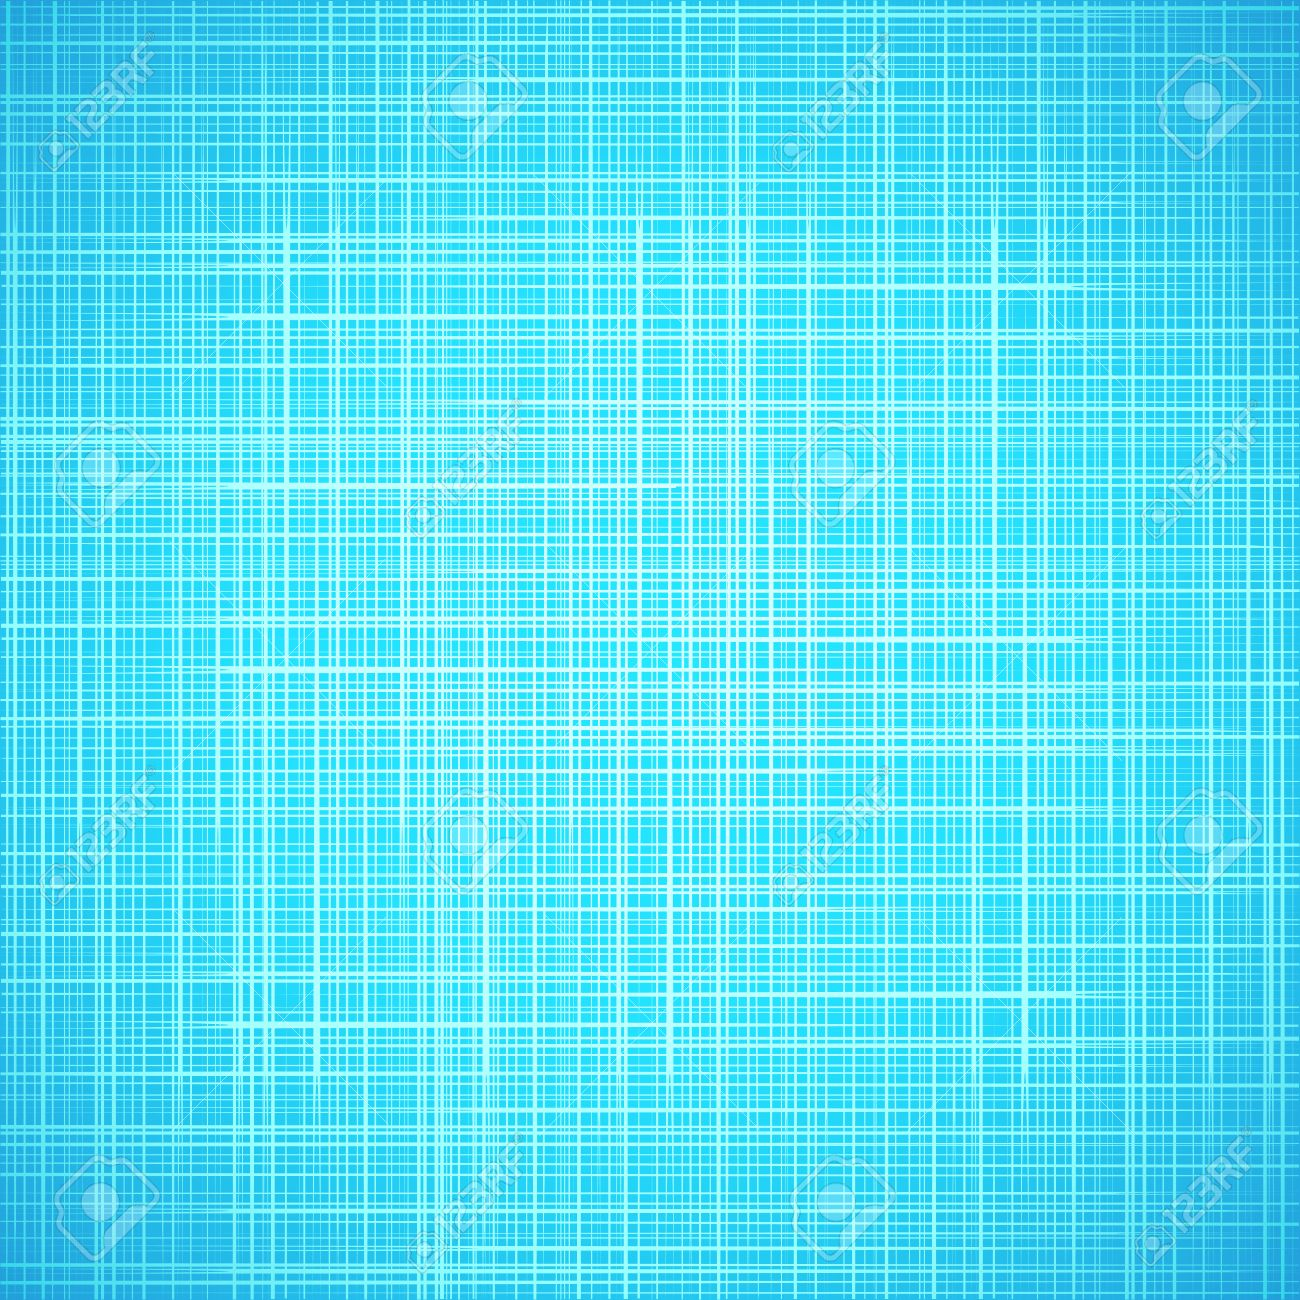 Light Blue Cloth Texture Background Vector Illustration For Your Summer Sky And Aqua Water Design